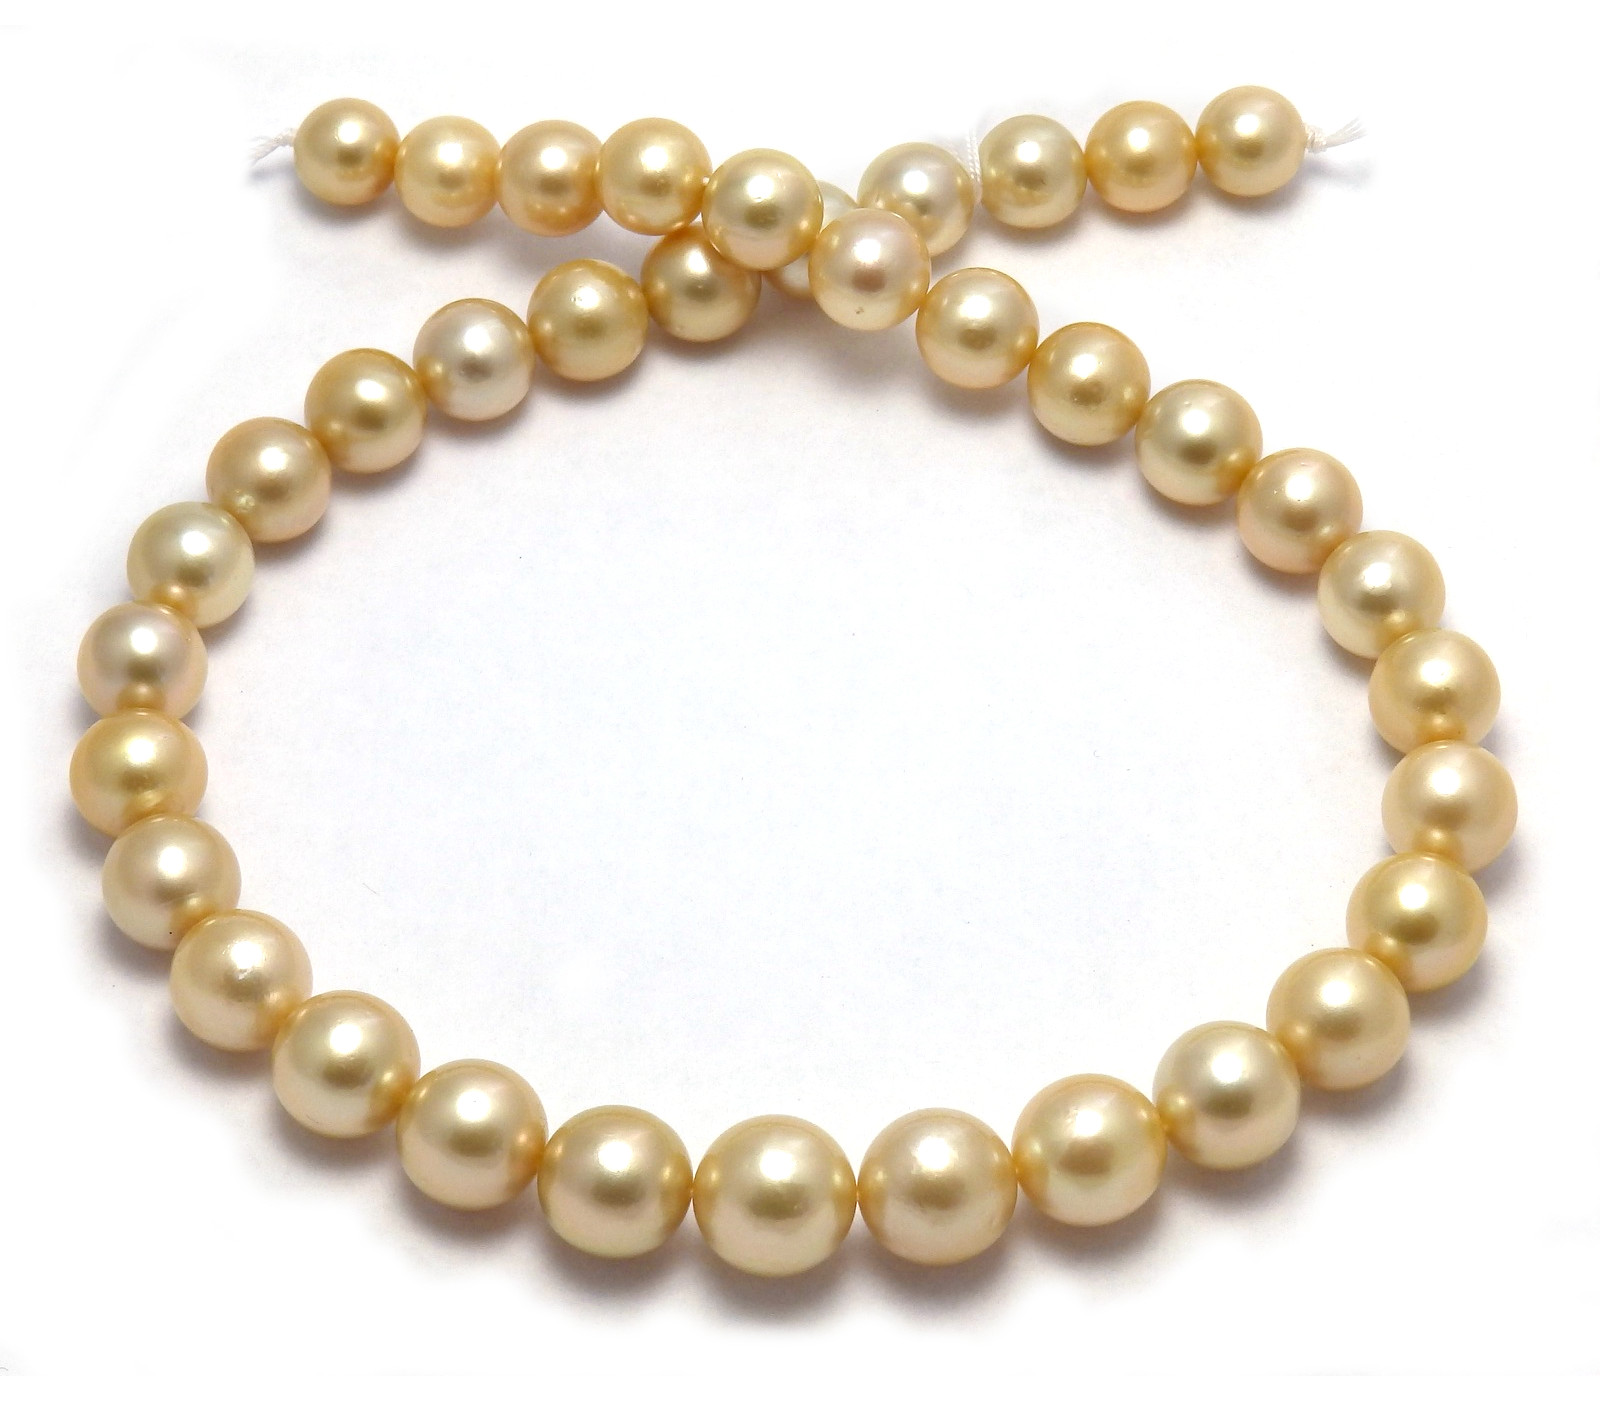 Buy A Golden South Sea Pearl Necklace With Round Gold Pearls. Silver Wedding Bands. Garnet Bracelet. Asscher Cut Wedding Rings. Bridal Set Rings. Garmin Fenix Sapphire. 14kt Chains. Wedding Ring And Band. Male Friendship Rings